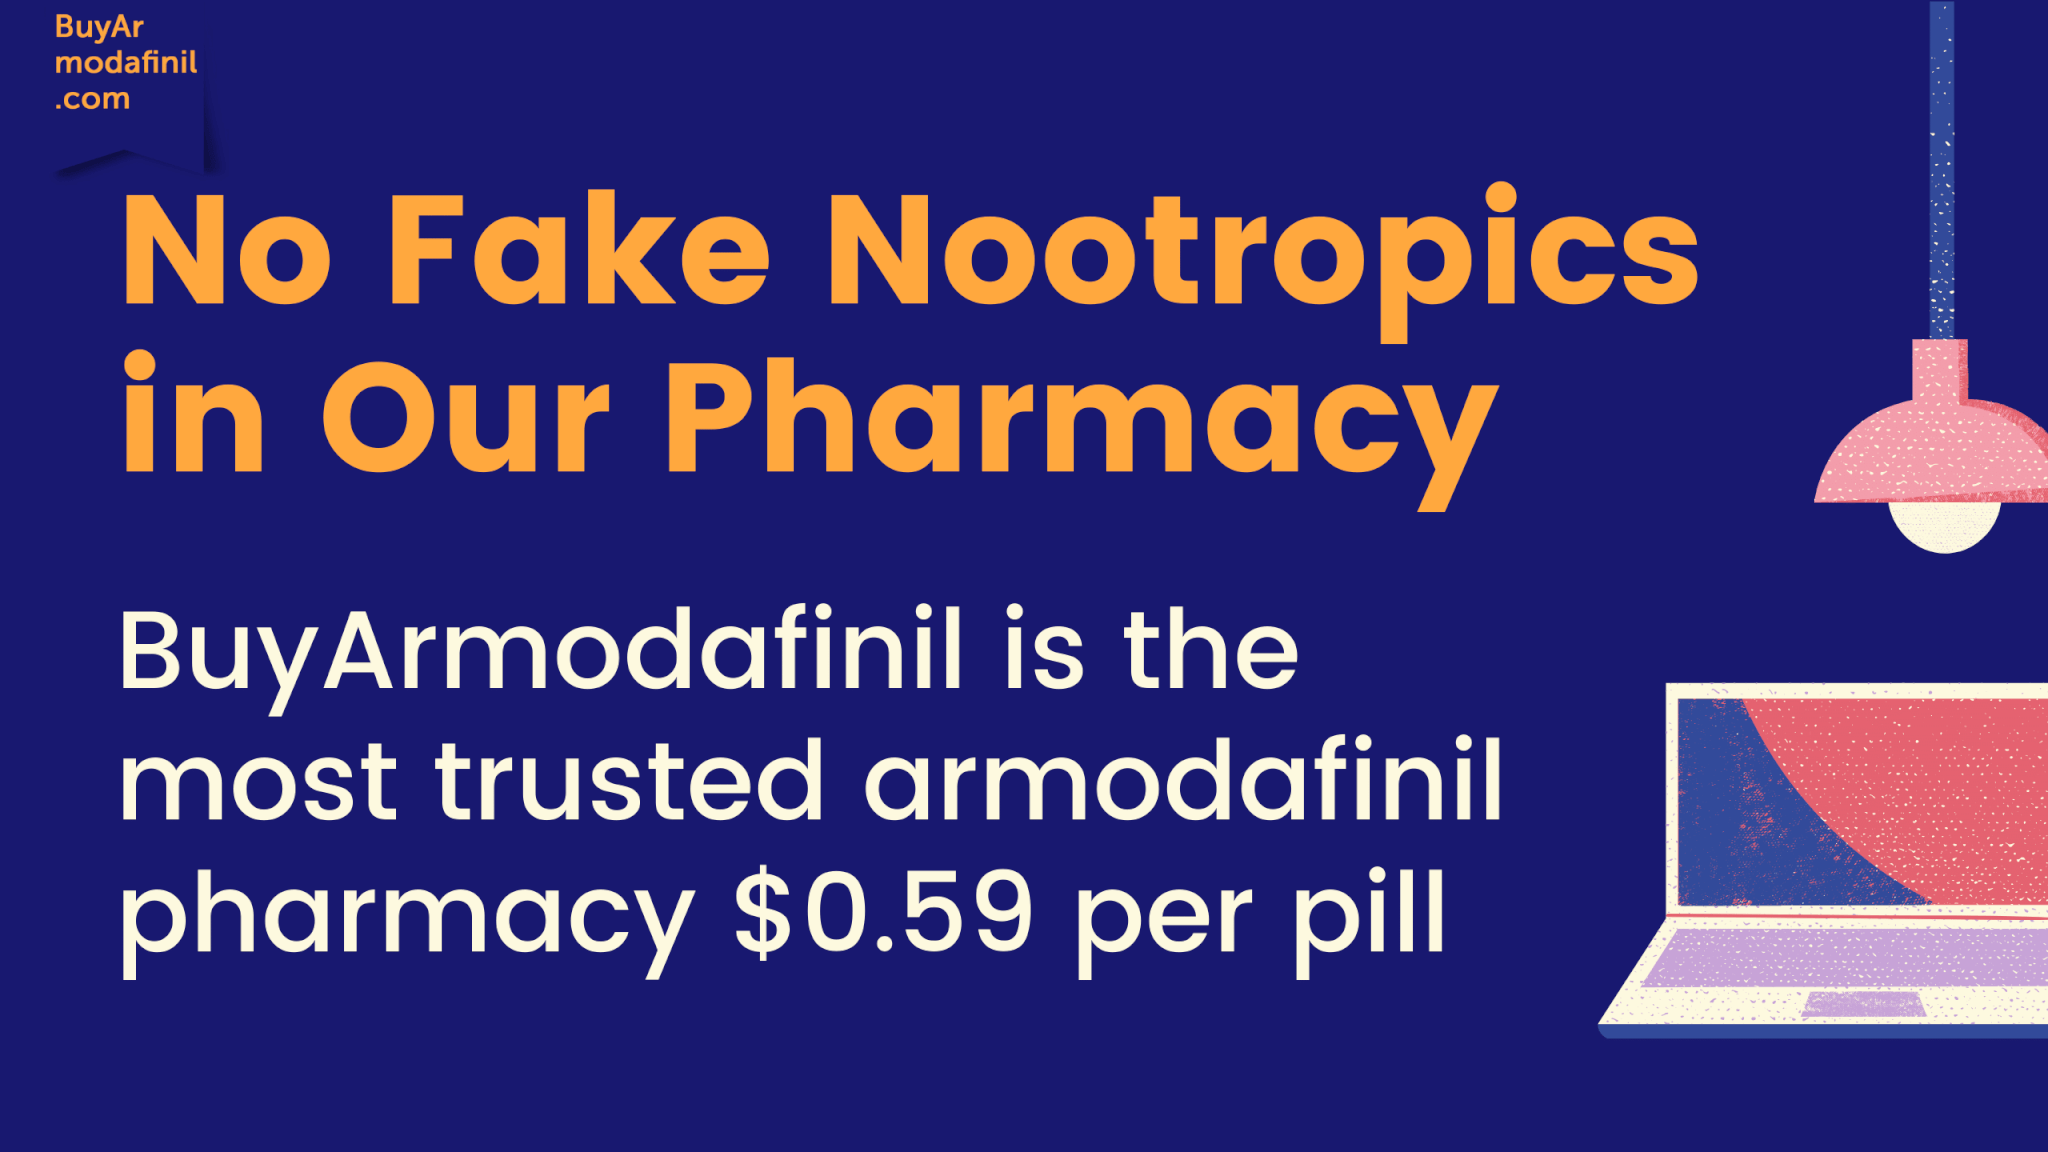 No Fake Nootropics in Our Pharmacy